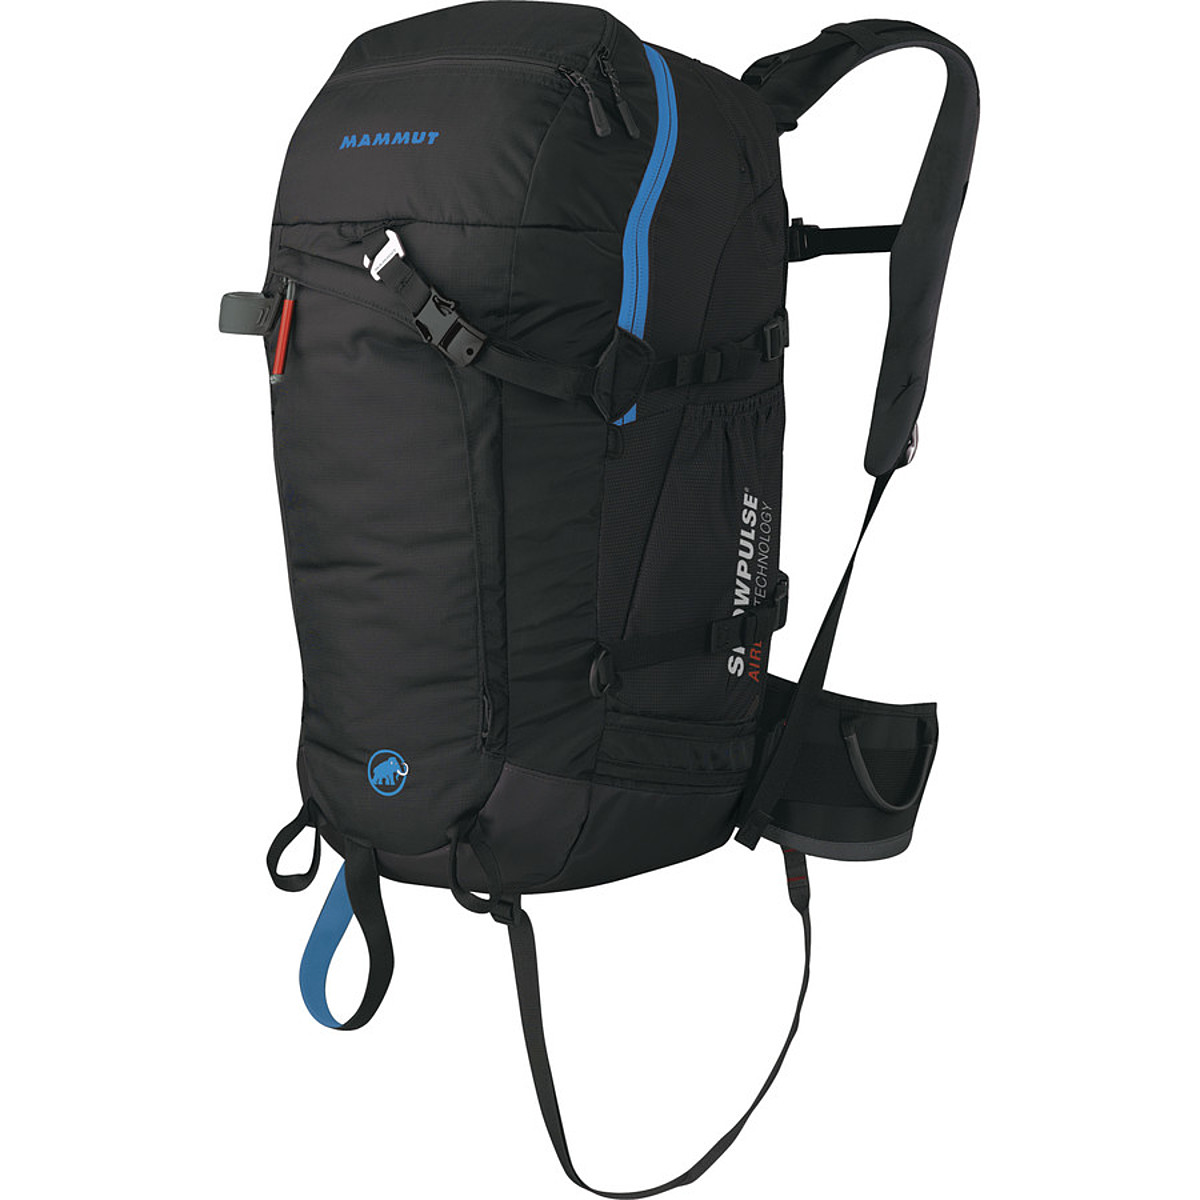 Mammut Pro Short Removable Airbag